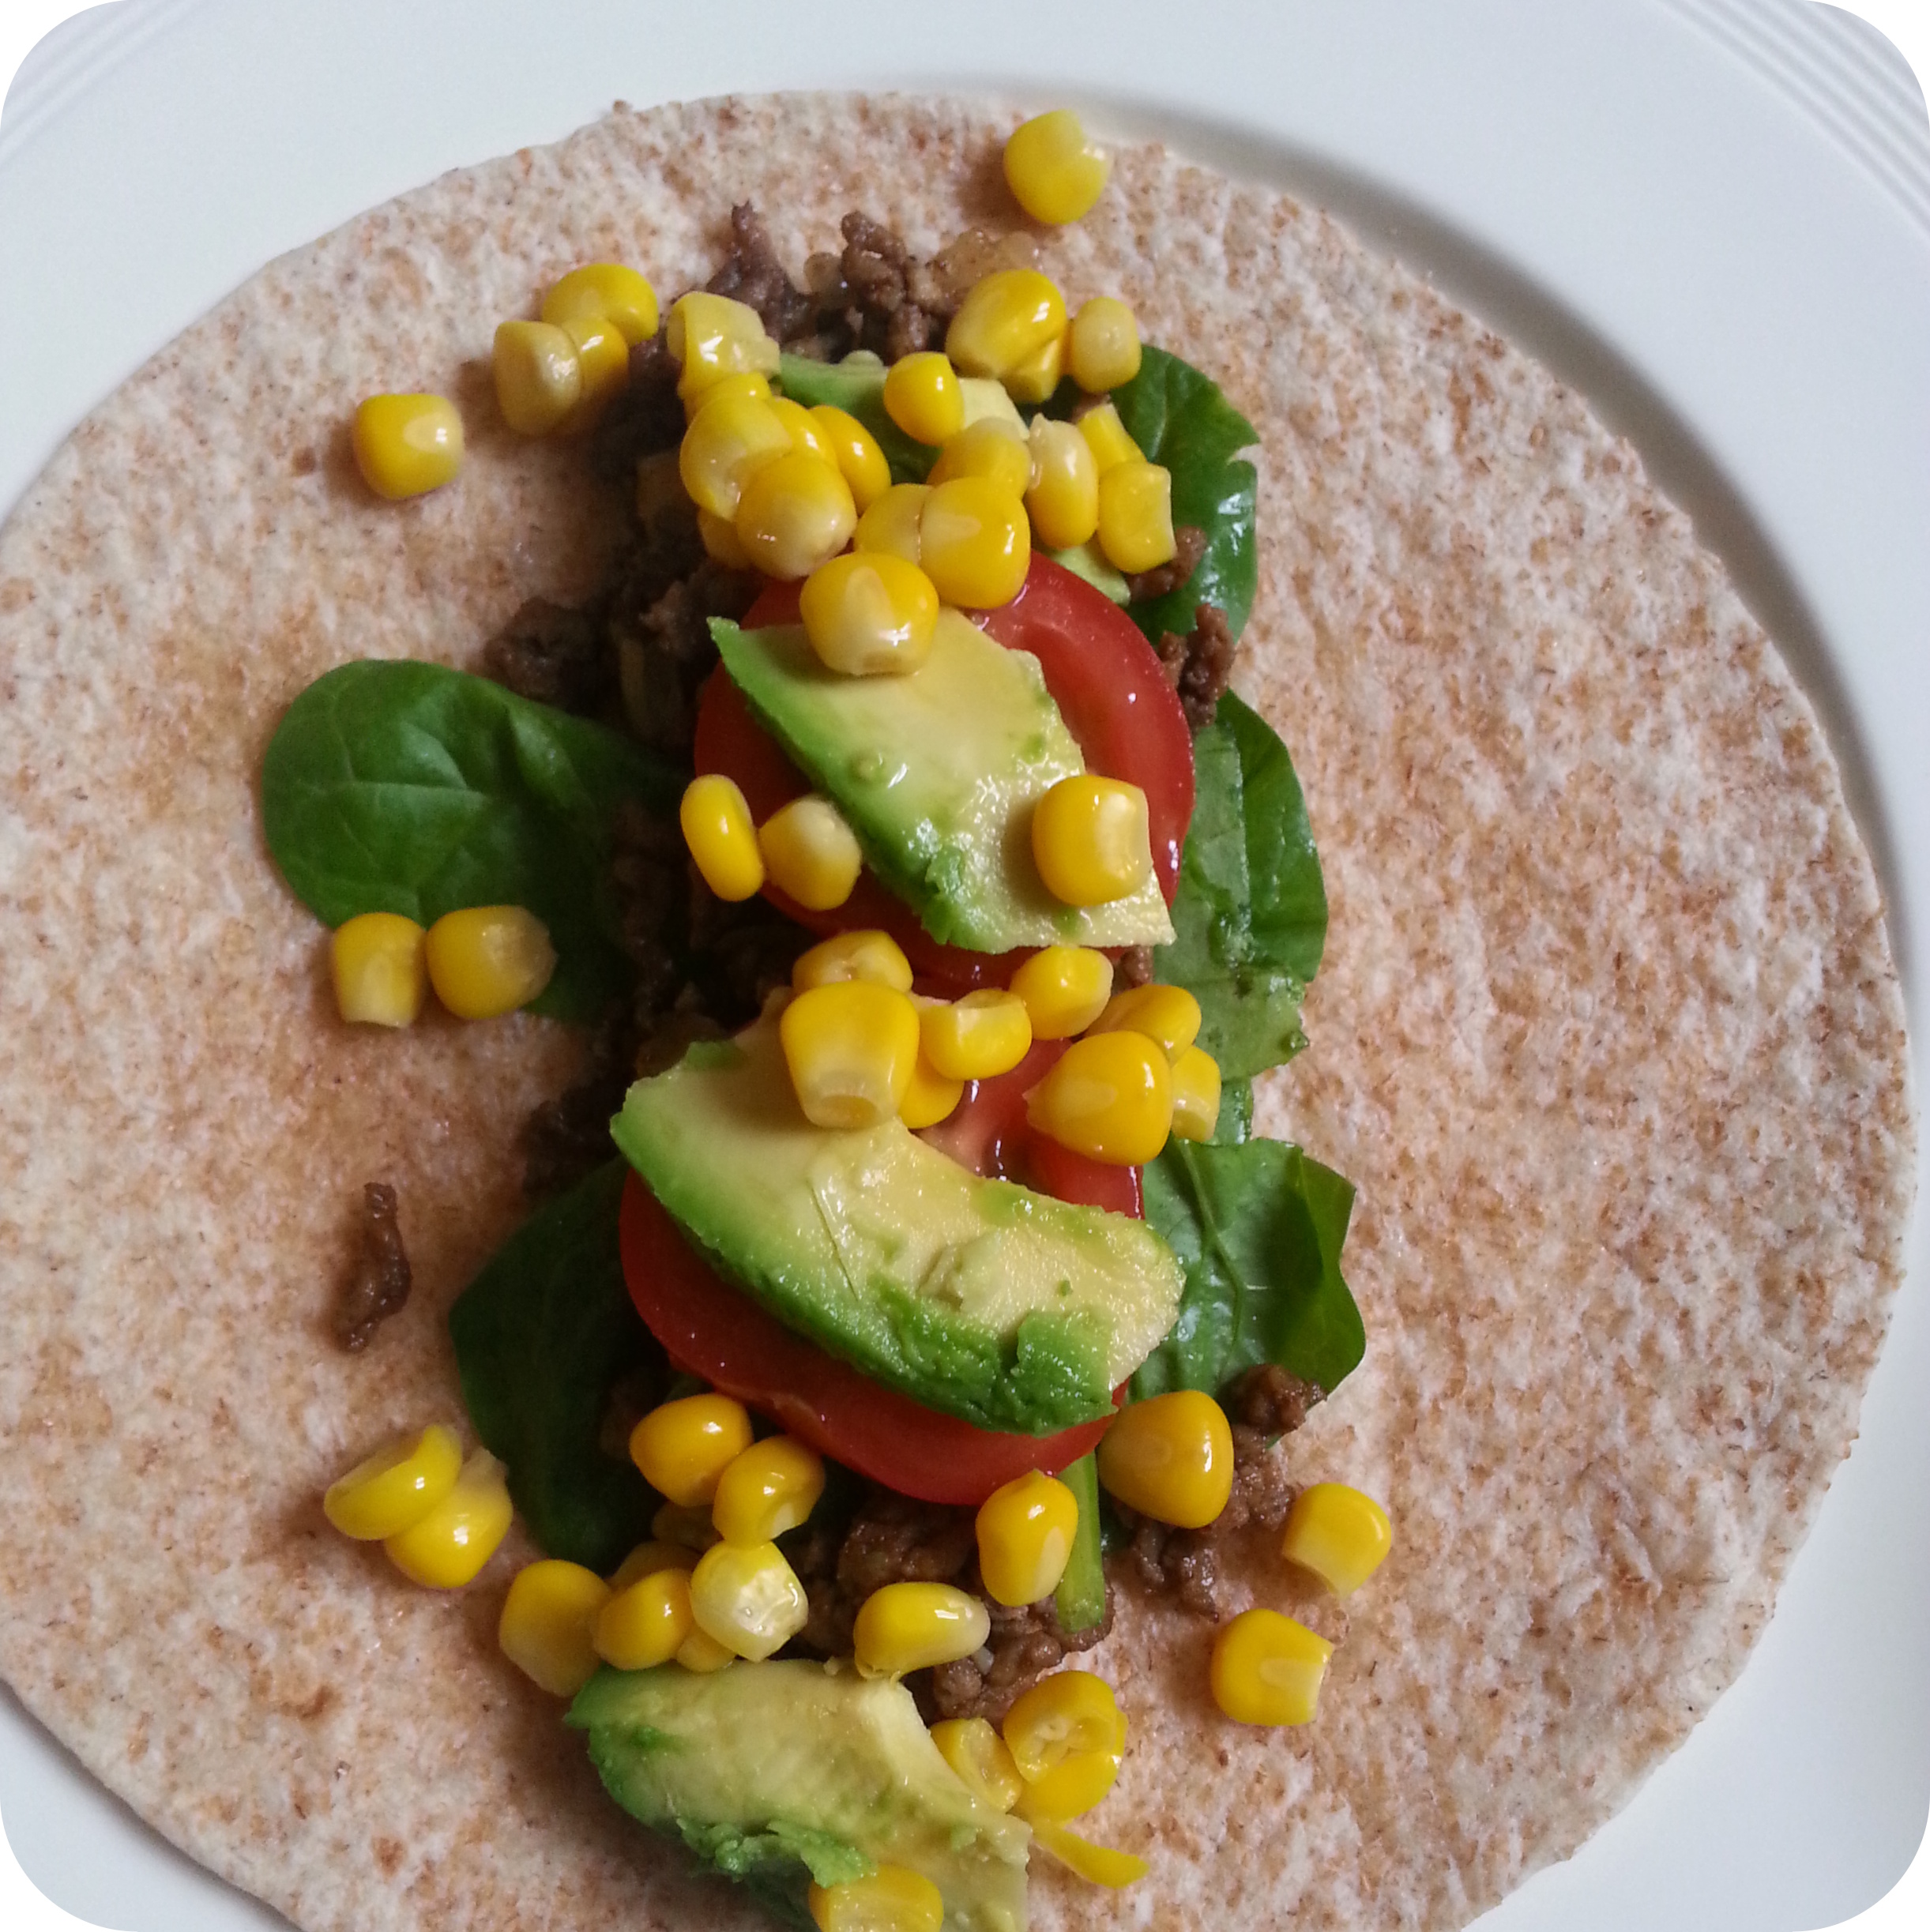 Healthy wraps with spinach and beef recipe Ana's Bananas Blog